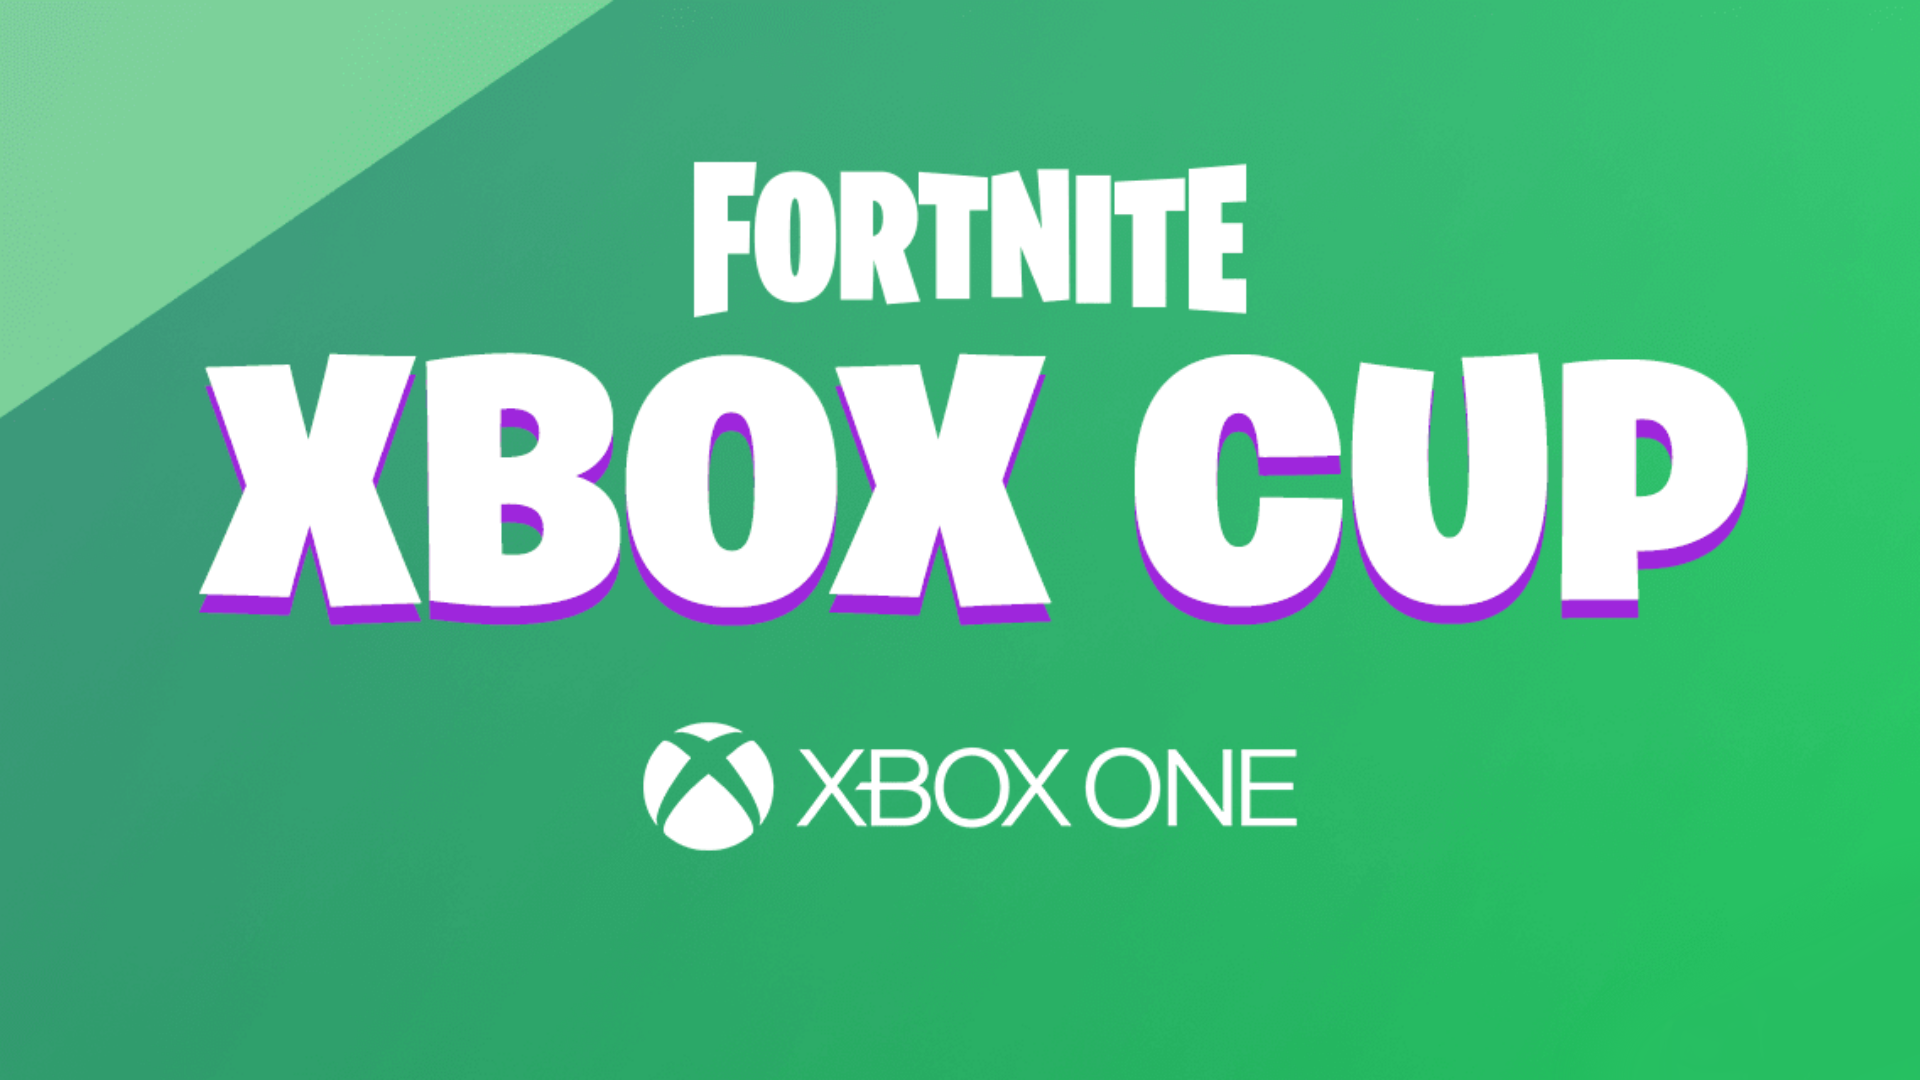 Fortnite Xbox Cup: Details on time, prize pool and more for $1M